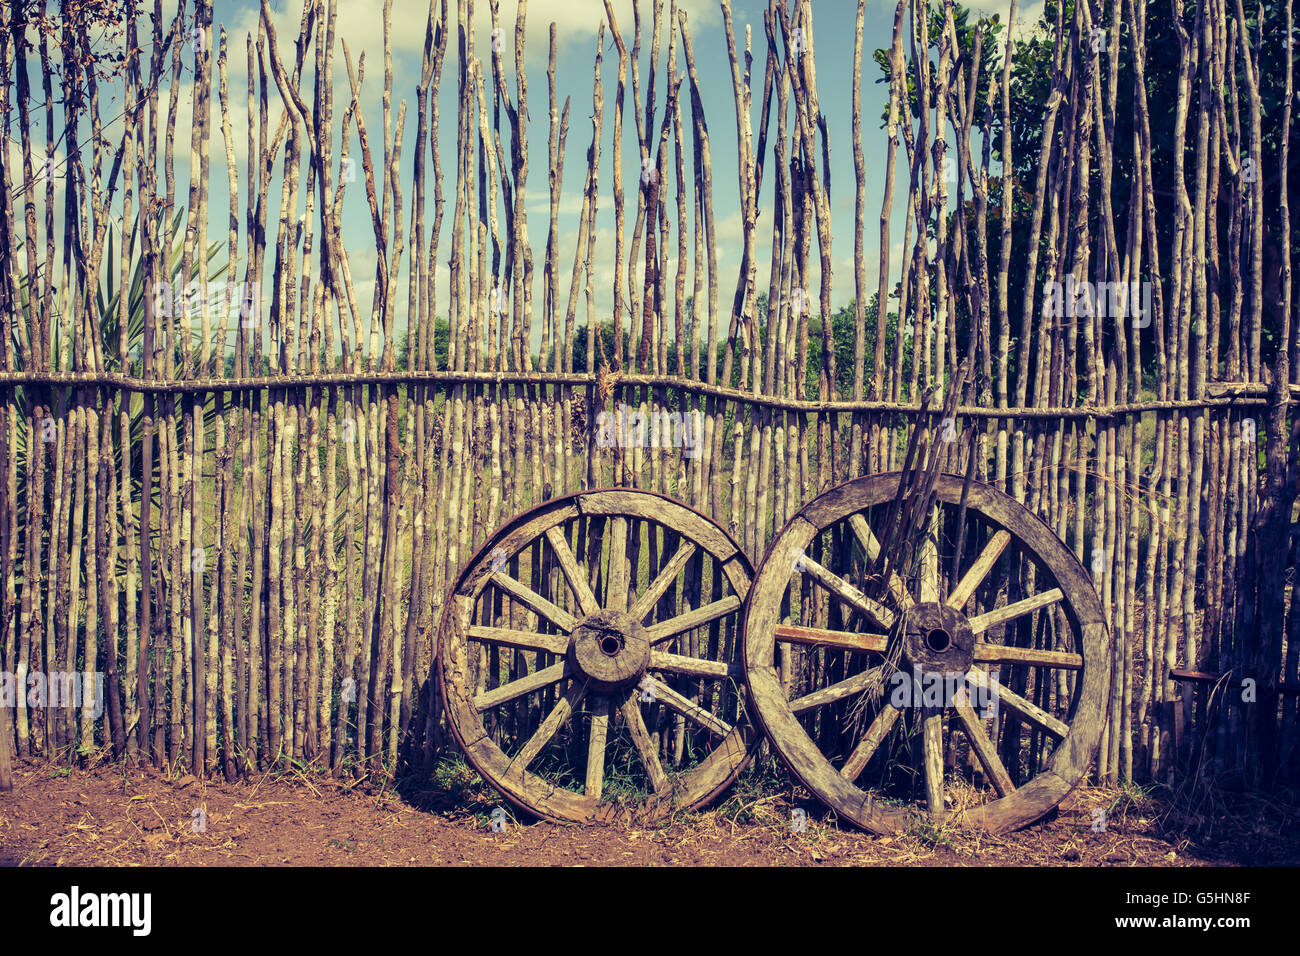 Two old wagon wheels near the wooden fence. Old cart wheel as symbol and concept of fortune and fate. Old fashioned - Stock Image